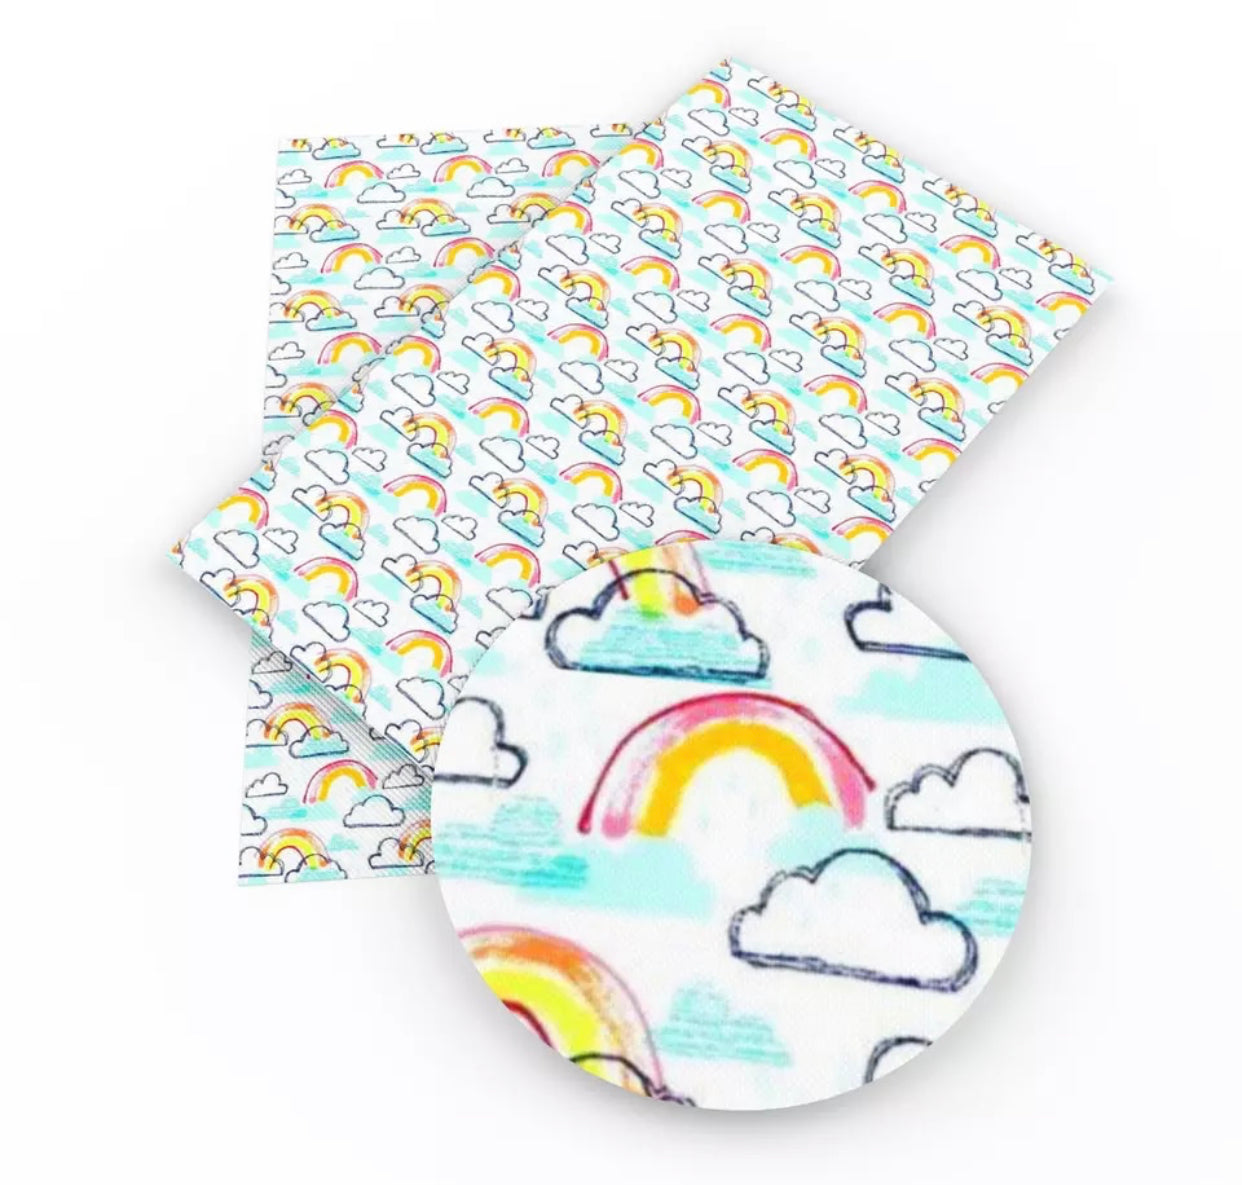 Faux Leather Sheet - Rainbow/Light Blue Clouds on White - shabbyflowers.com